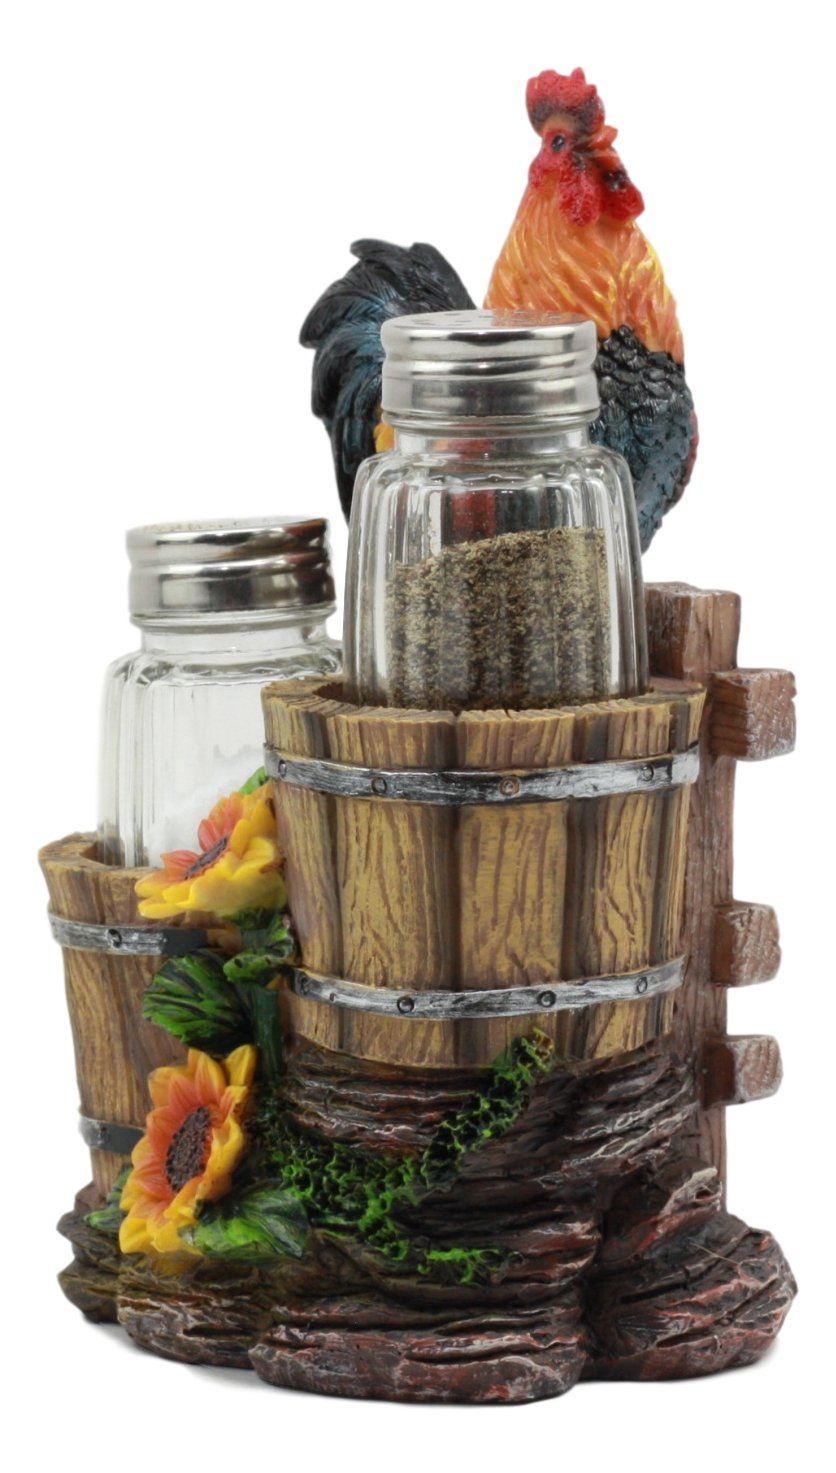 Ebros Sunflower Farm Crowing Rooster Standing On Fence By Old Fashioned Wooden Buckets Glass Salt And Pepper Shakers Holder Figurine 6.5H Chicken Country Western Decorative Sculpture Ebros Gift